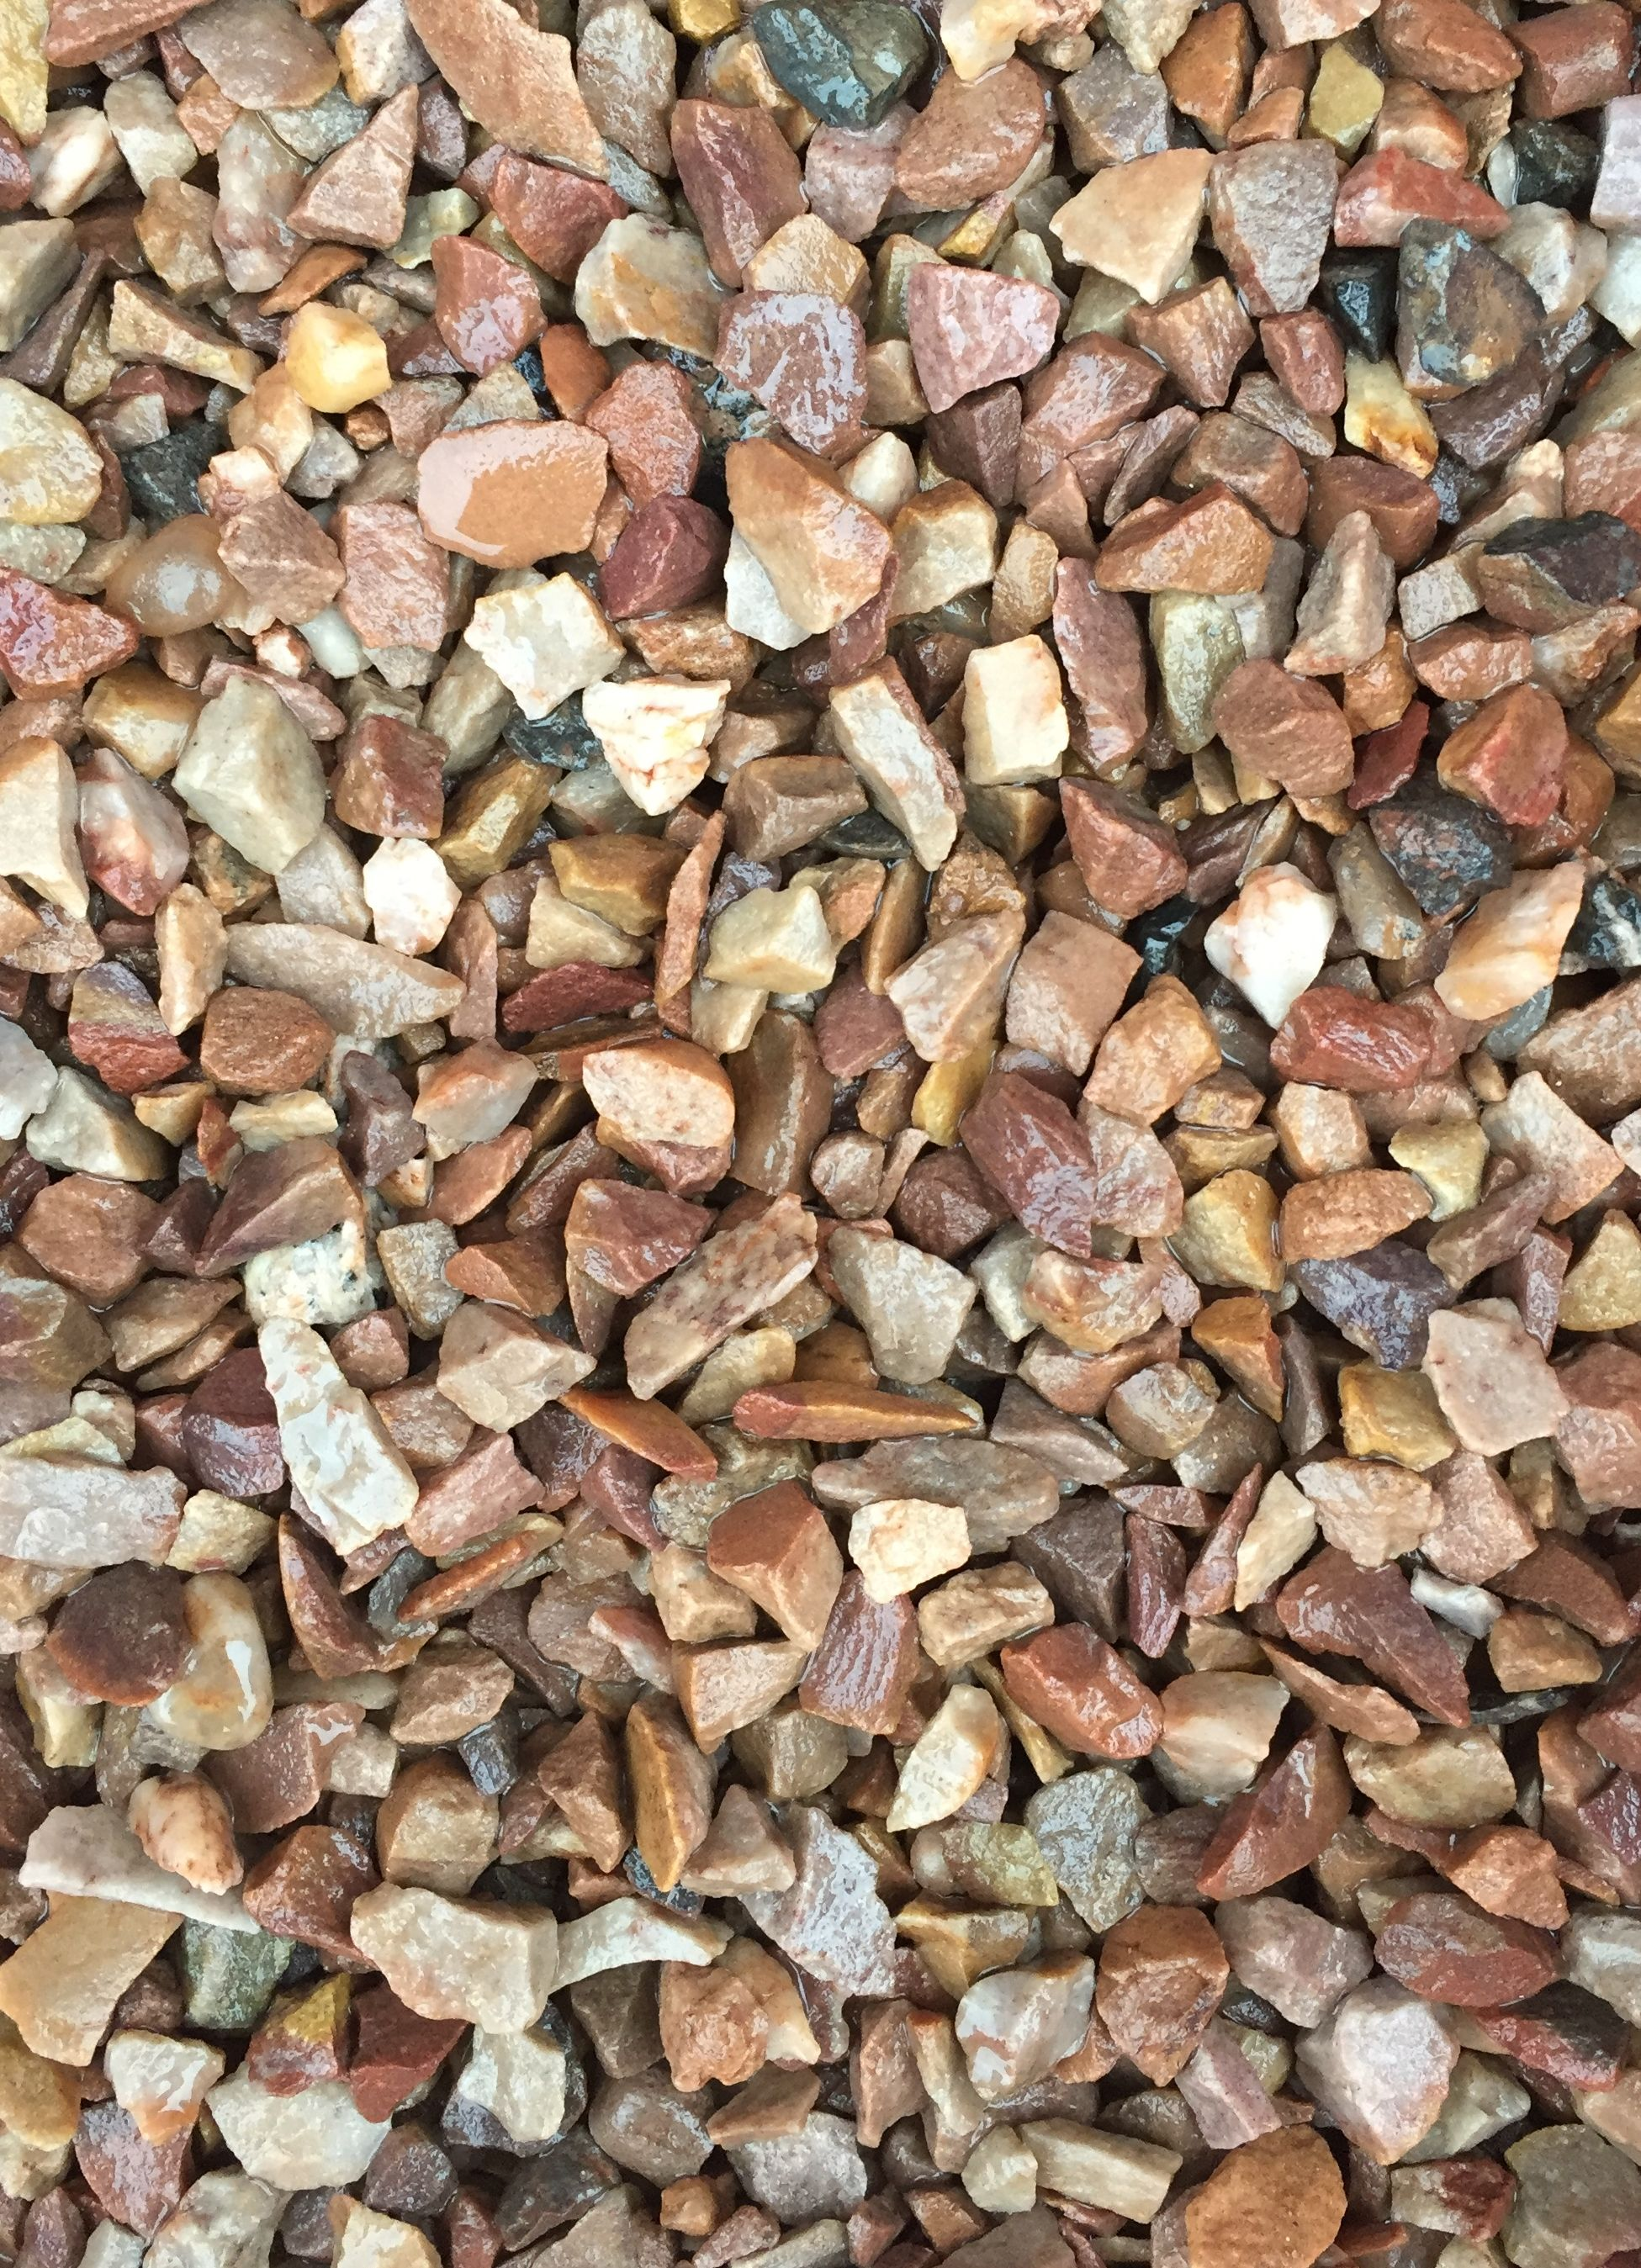 10mm Quartzite Gravel As Seen When Wet Decorative Gravel Quartzite Gravel